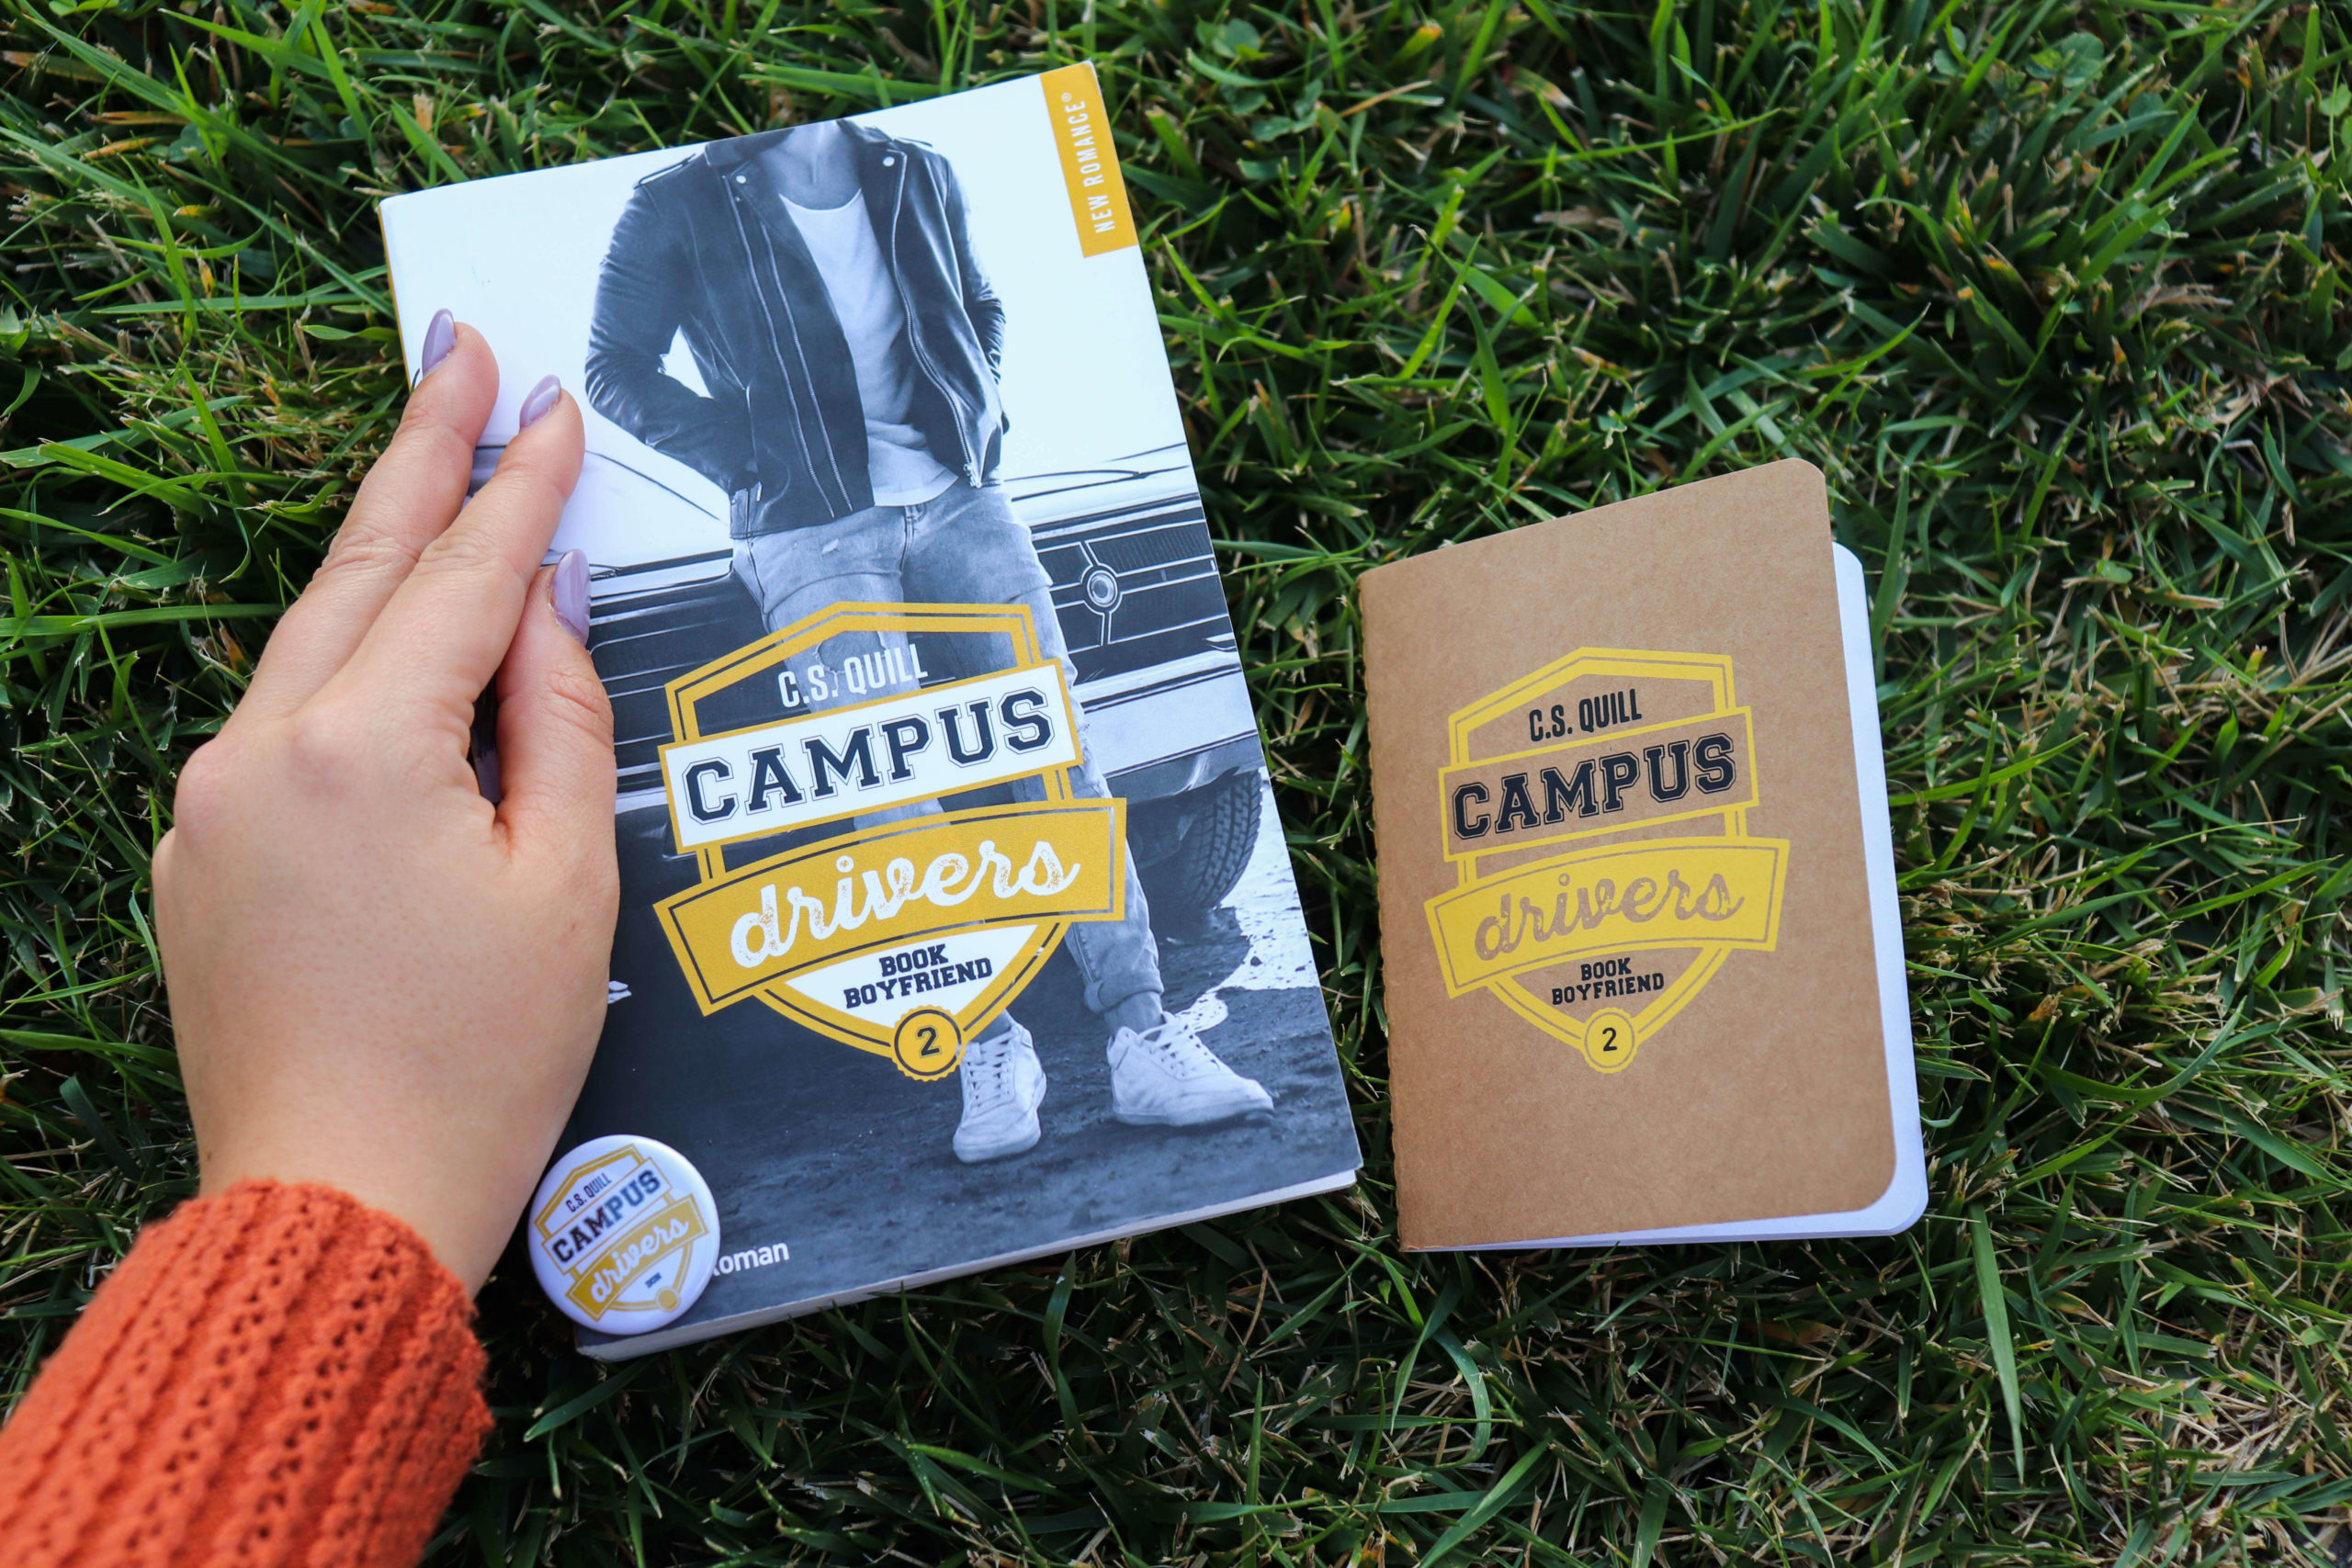 Campus Drivers #2 Bookboyfriend – C.S. Quill